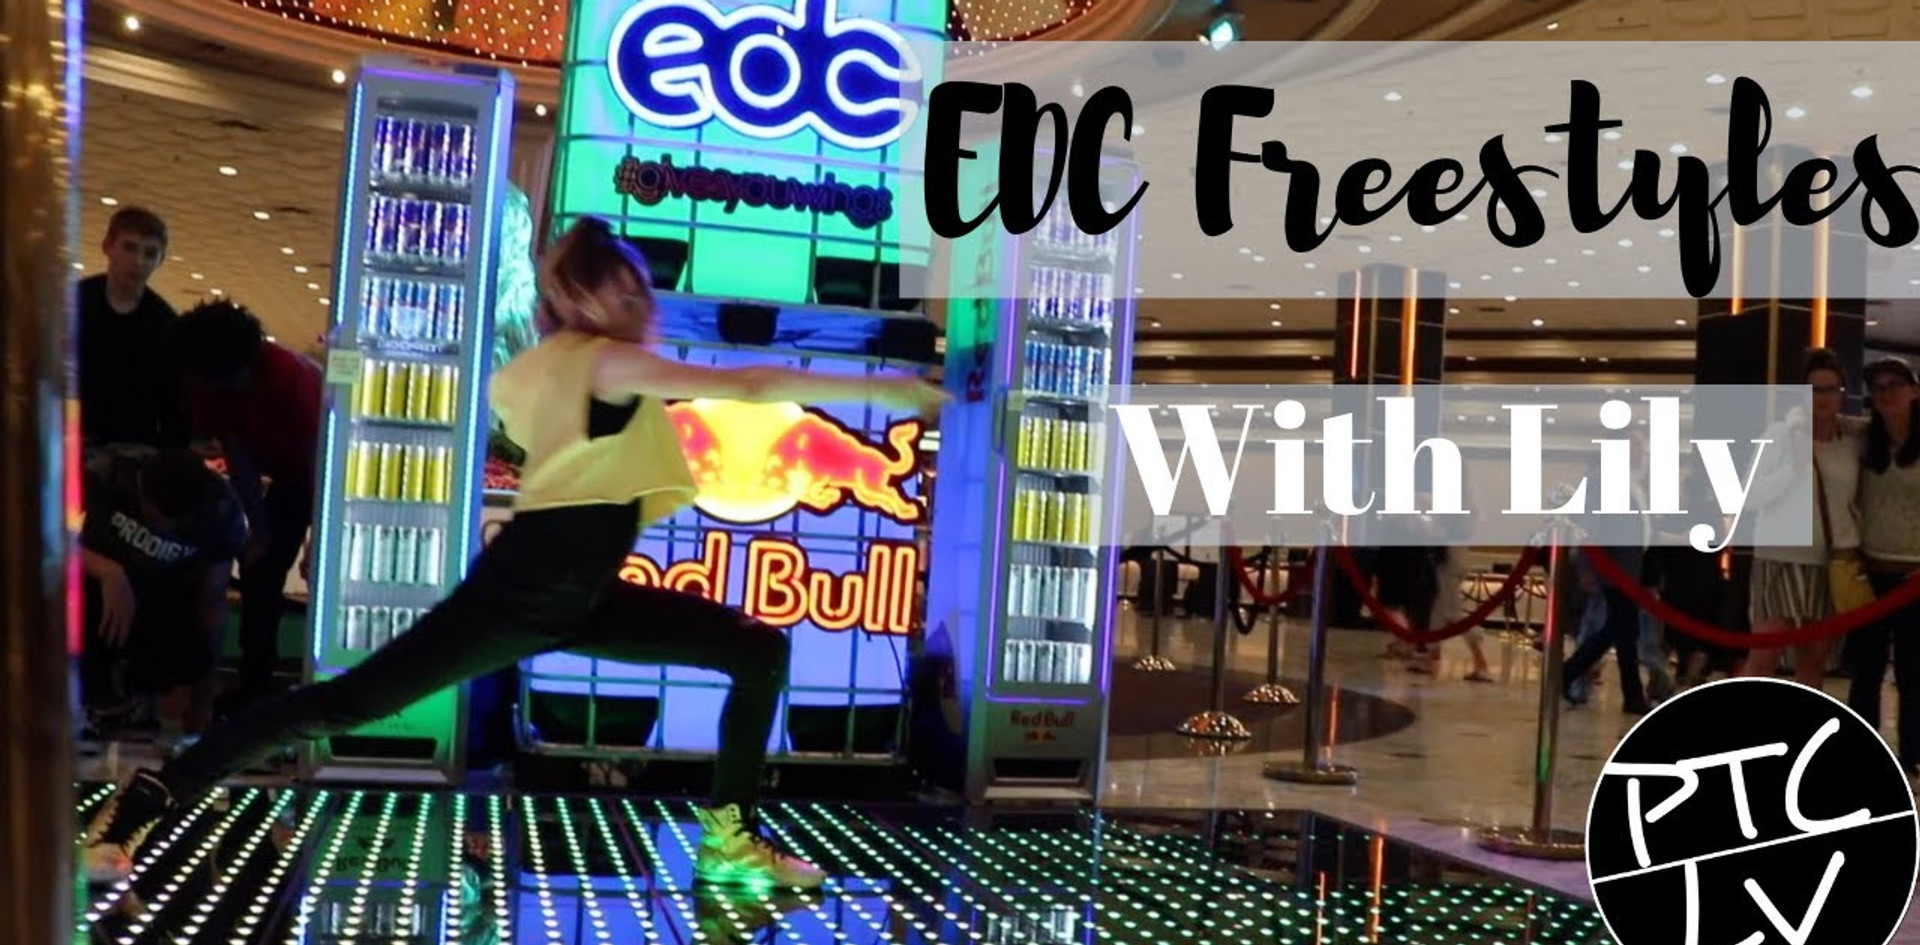 Lily  Goehring Freestyles at EDC Red Bull Event